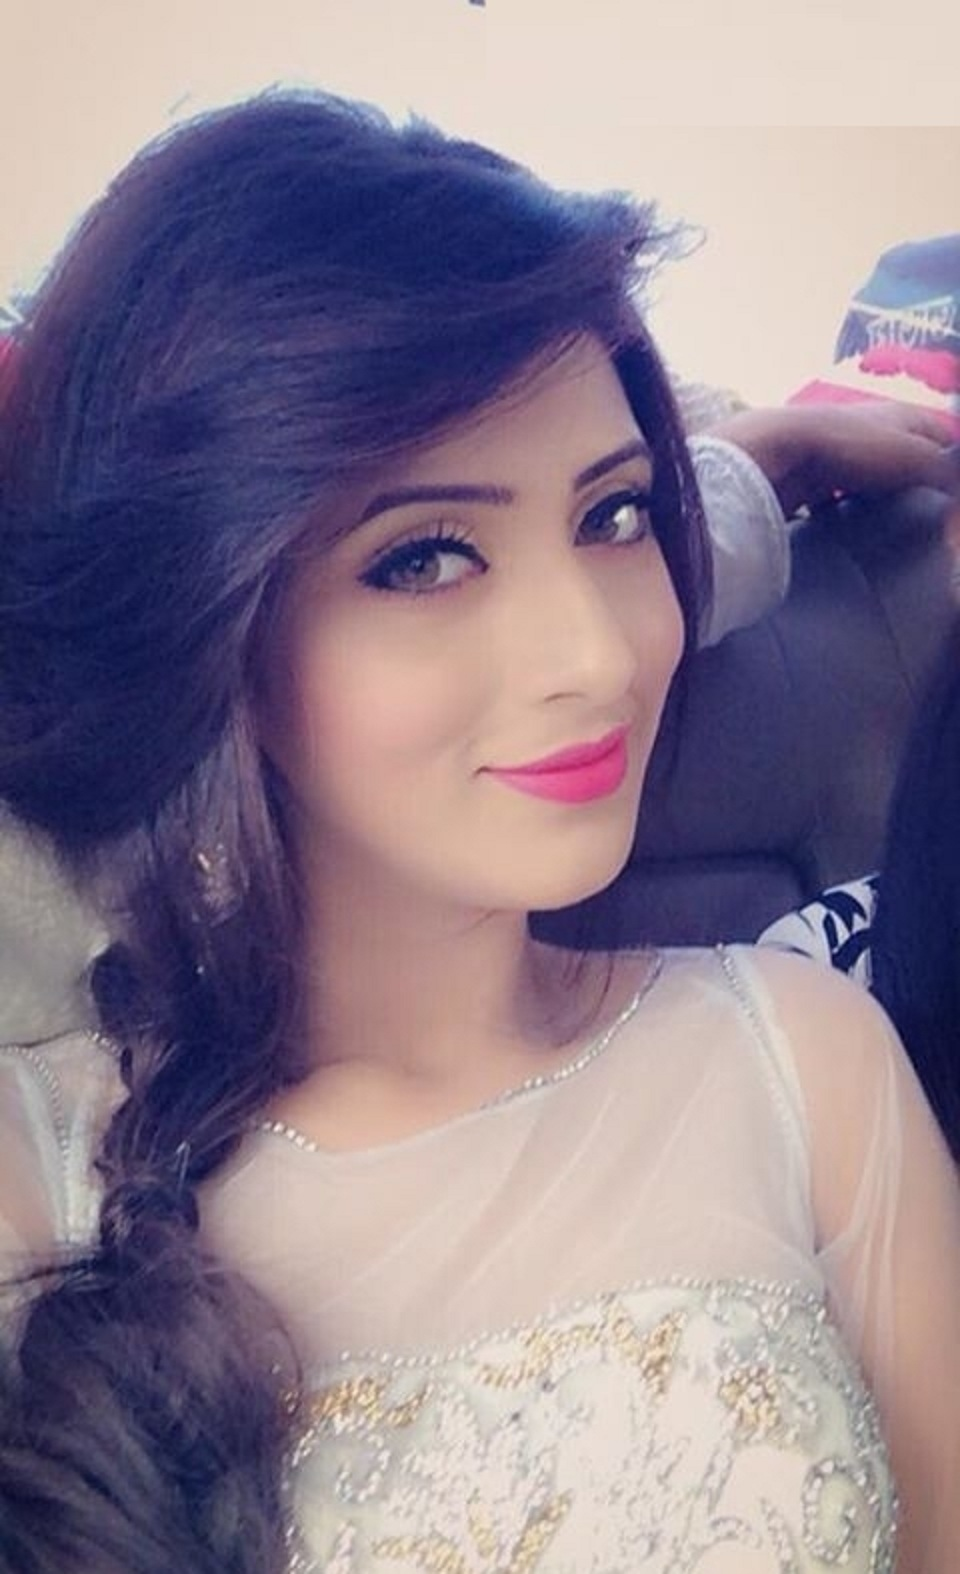 Bangladeshi Facebook Girl Wallpaper Bidya Sinha Saha Mim Images Hd Wallpaper All 4u Wallpaper